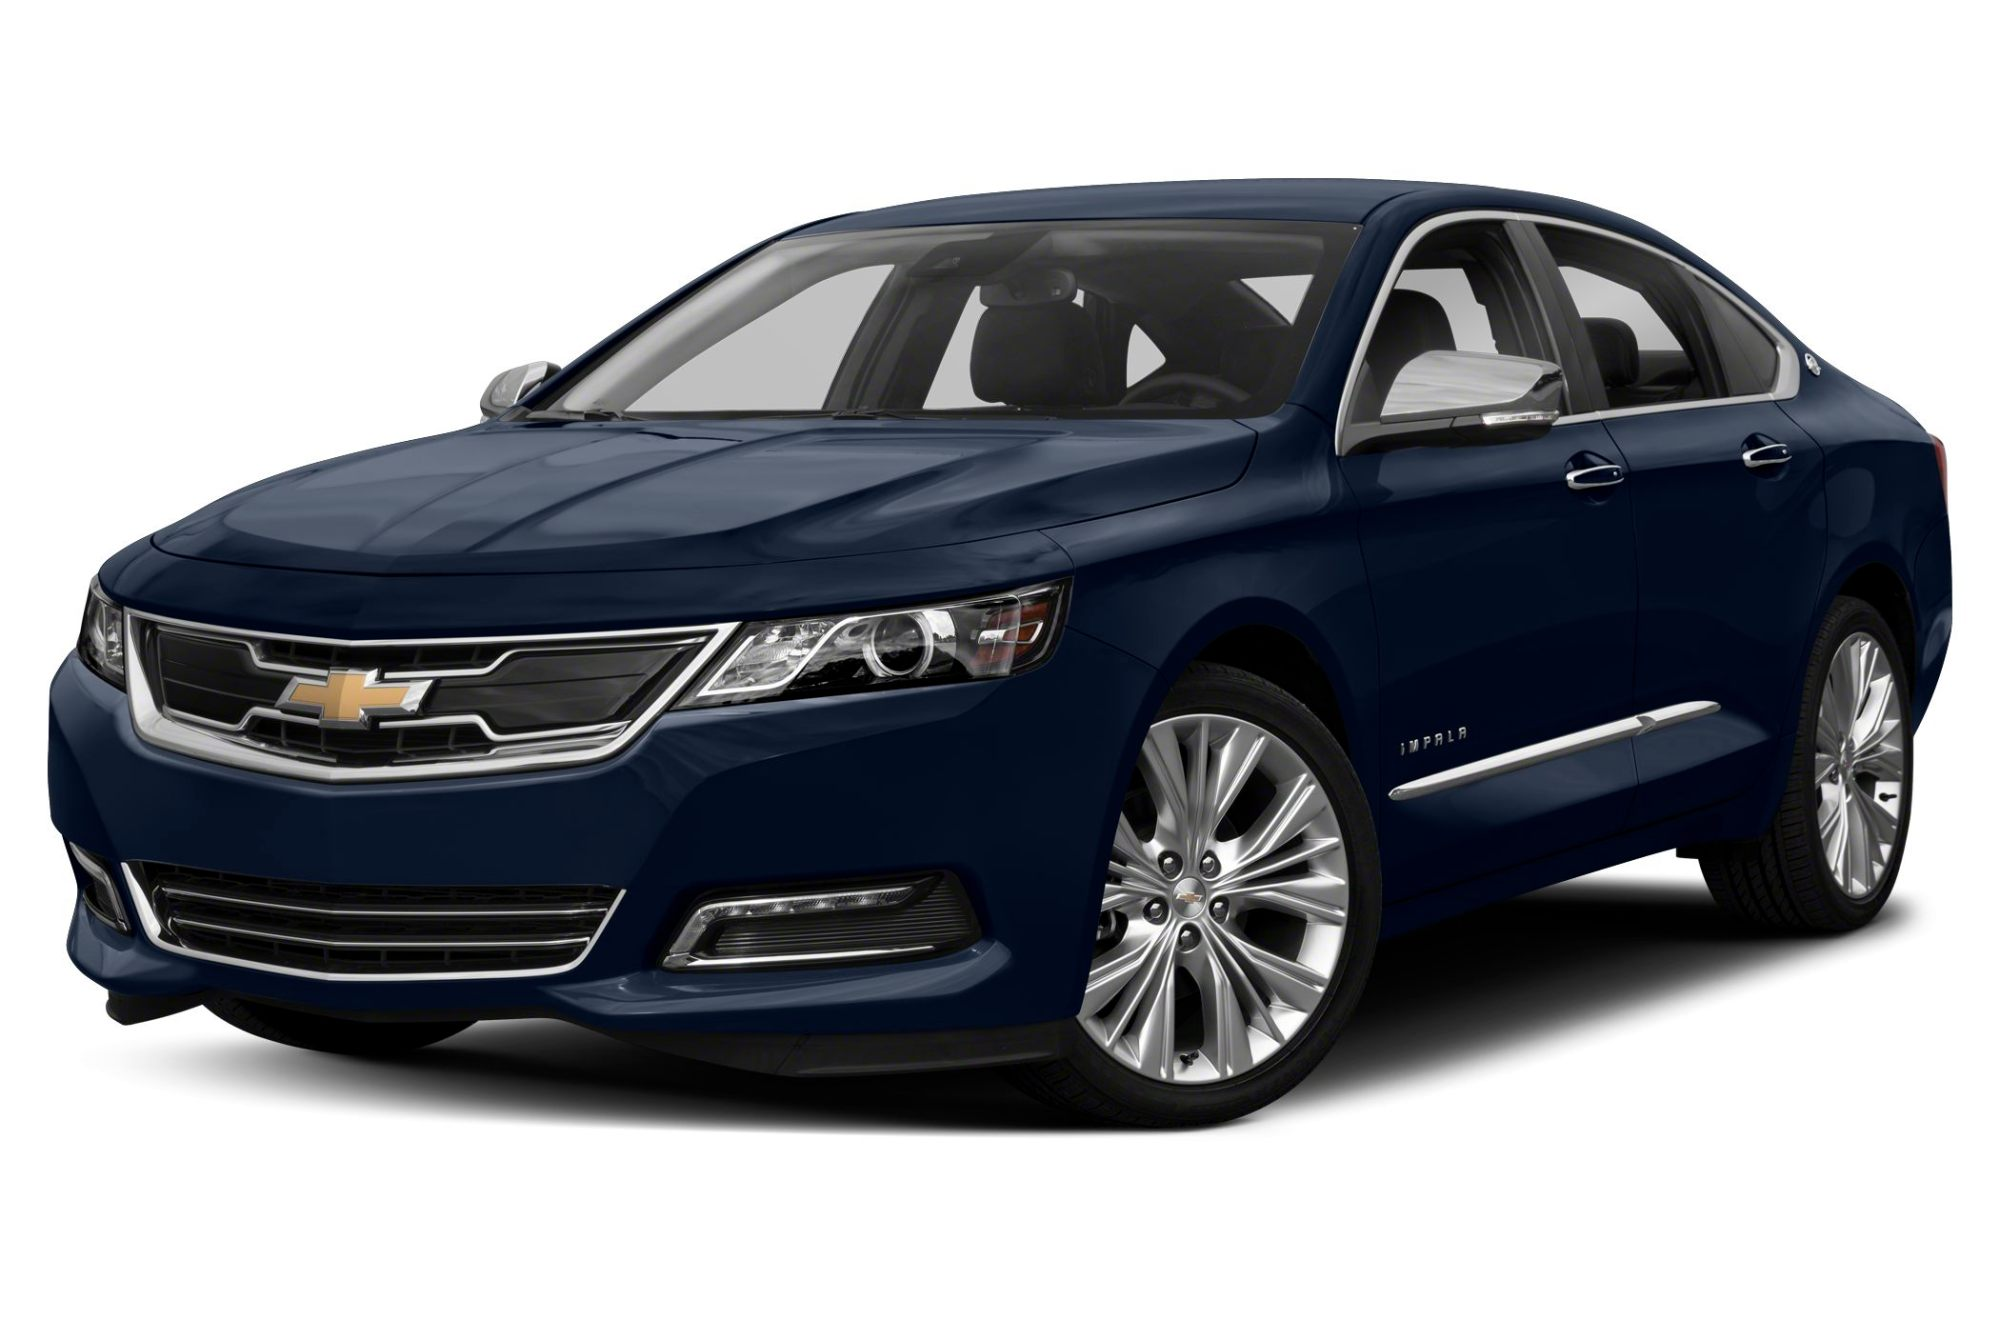 hight resolution of 2018 chevrolet impala photos